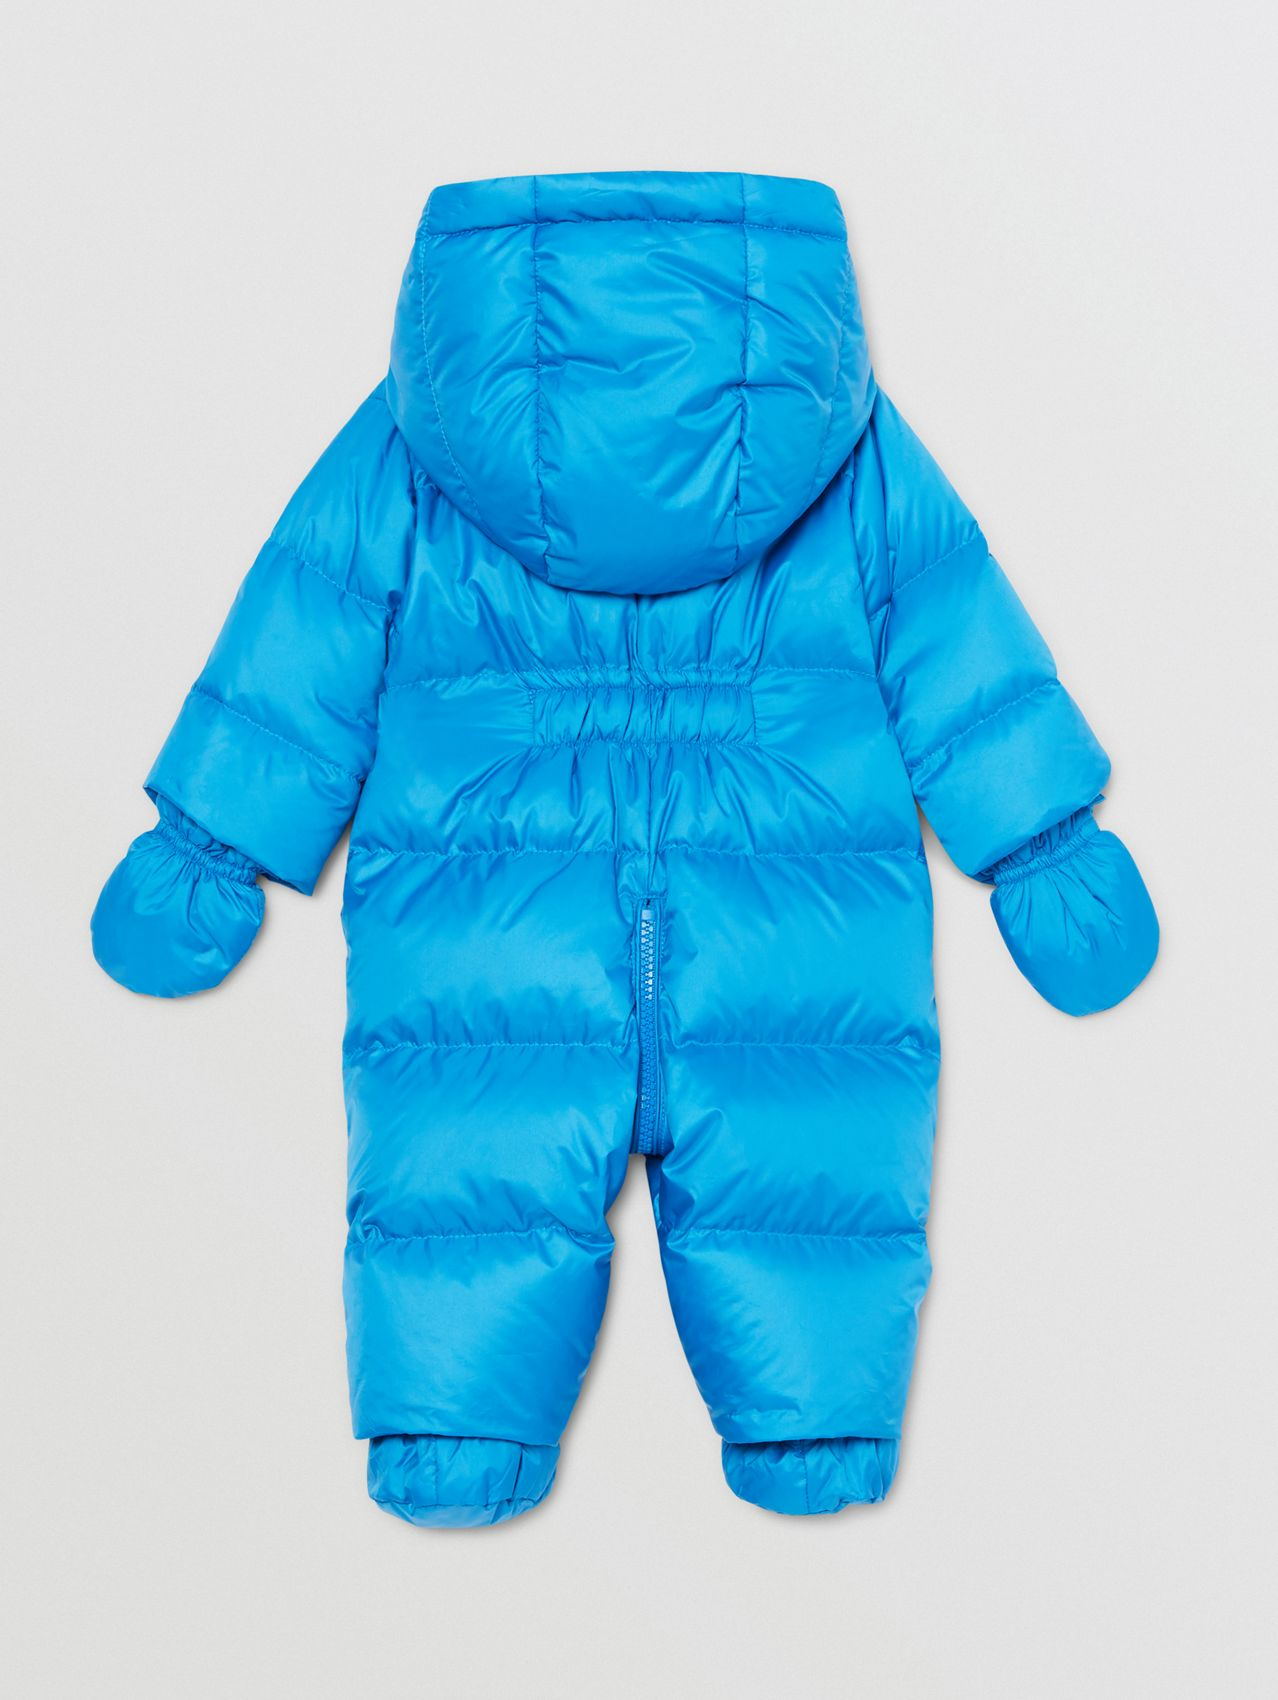 Logo Appliqué Puffer Suit in Cerulean Blue